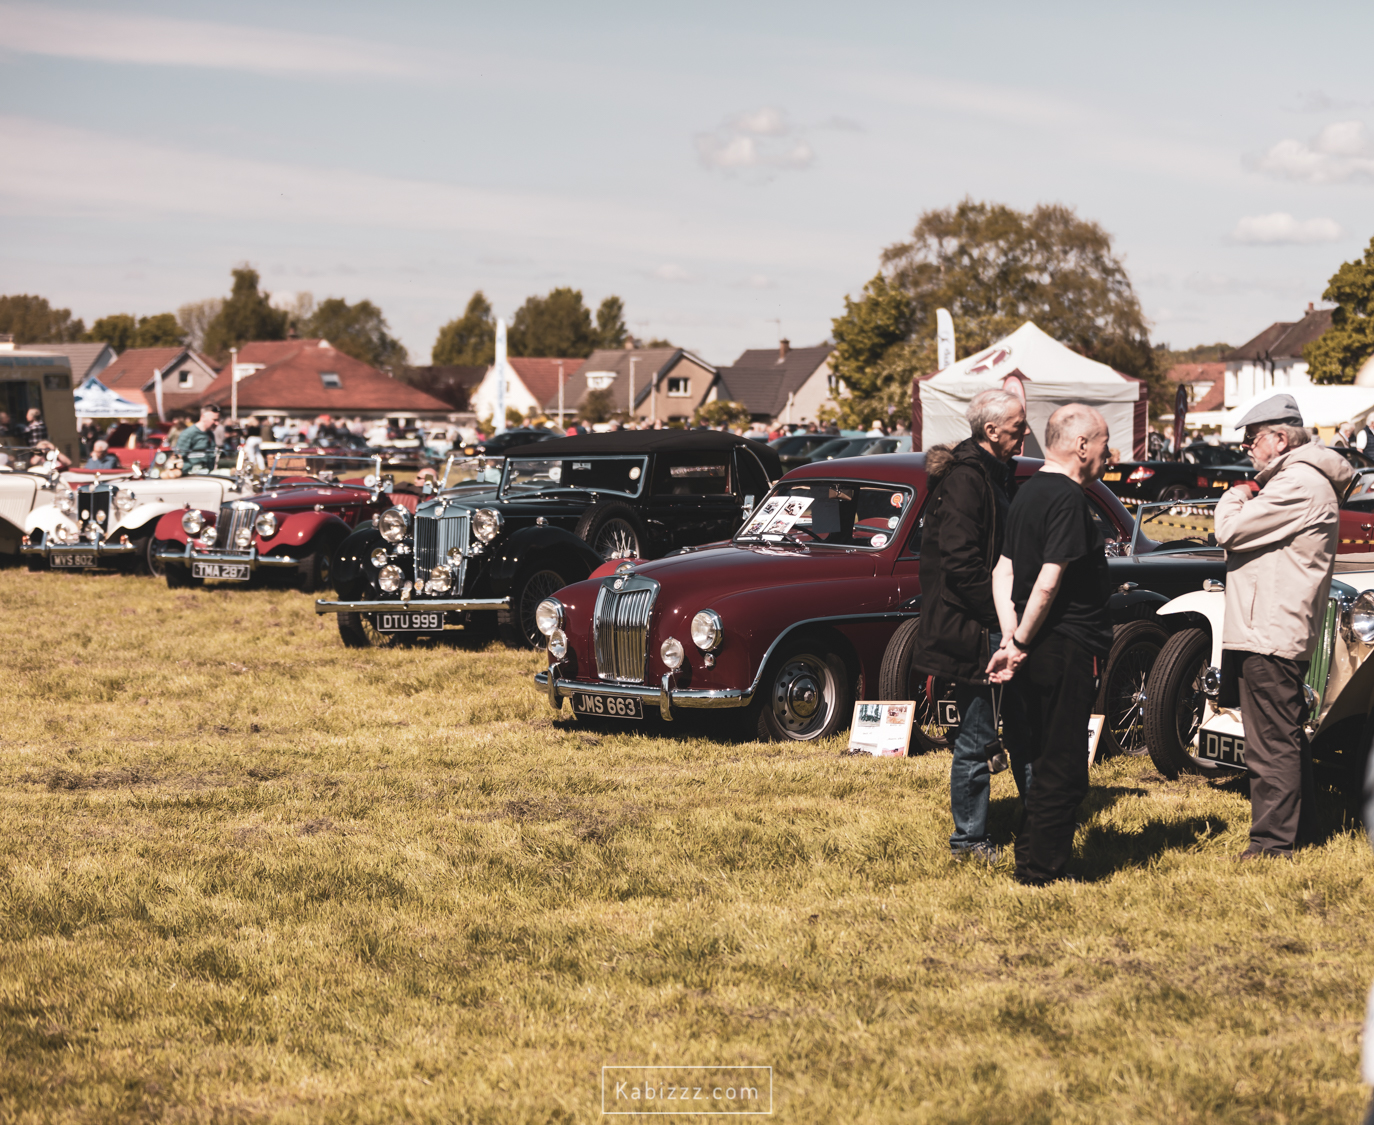 Kabizzz_Photography_Stirling_District_Classic _cars-48.jpg